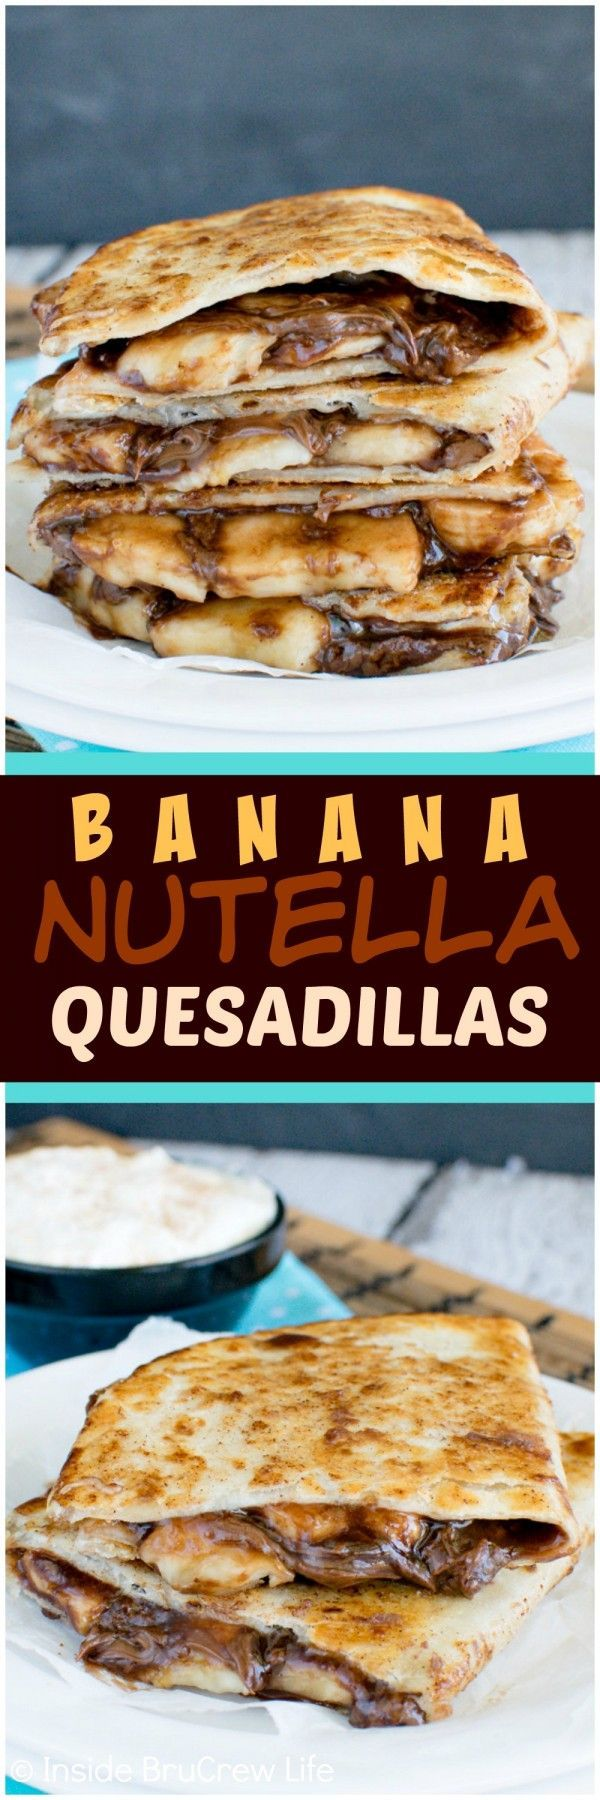 Banana Nutella Quesadillas - cinnamon sugar tortillas filled with banana slices and Nutella makes an awesome no bake dessert recipe!(Bake Oatmeal Desserts)